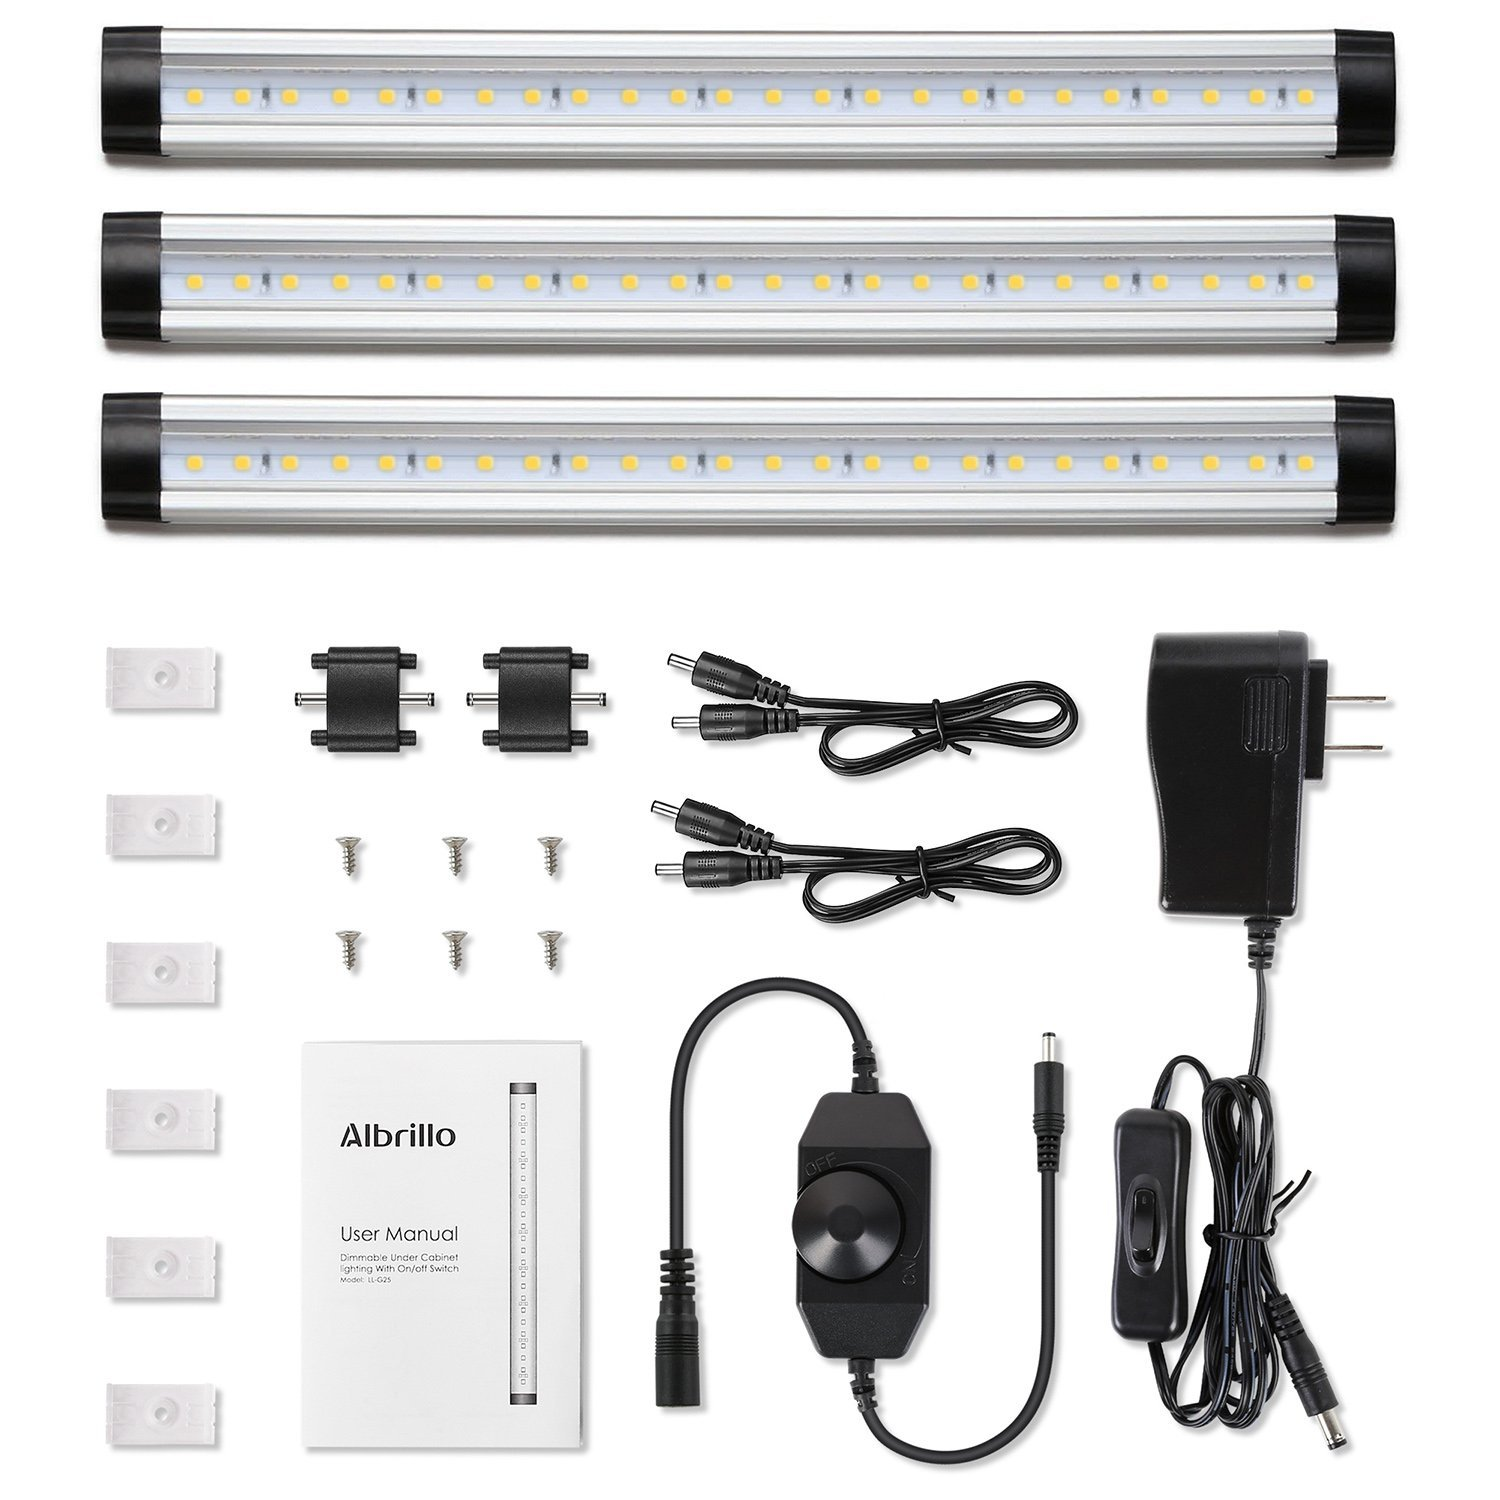 Albrillo LED Under Cabinet Lighting Dimmable Warm White, 12W 900 Lumens, 3 Pack